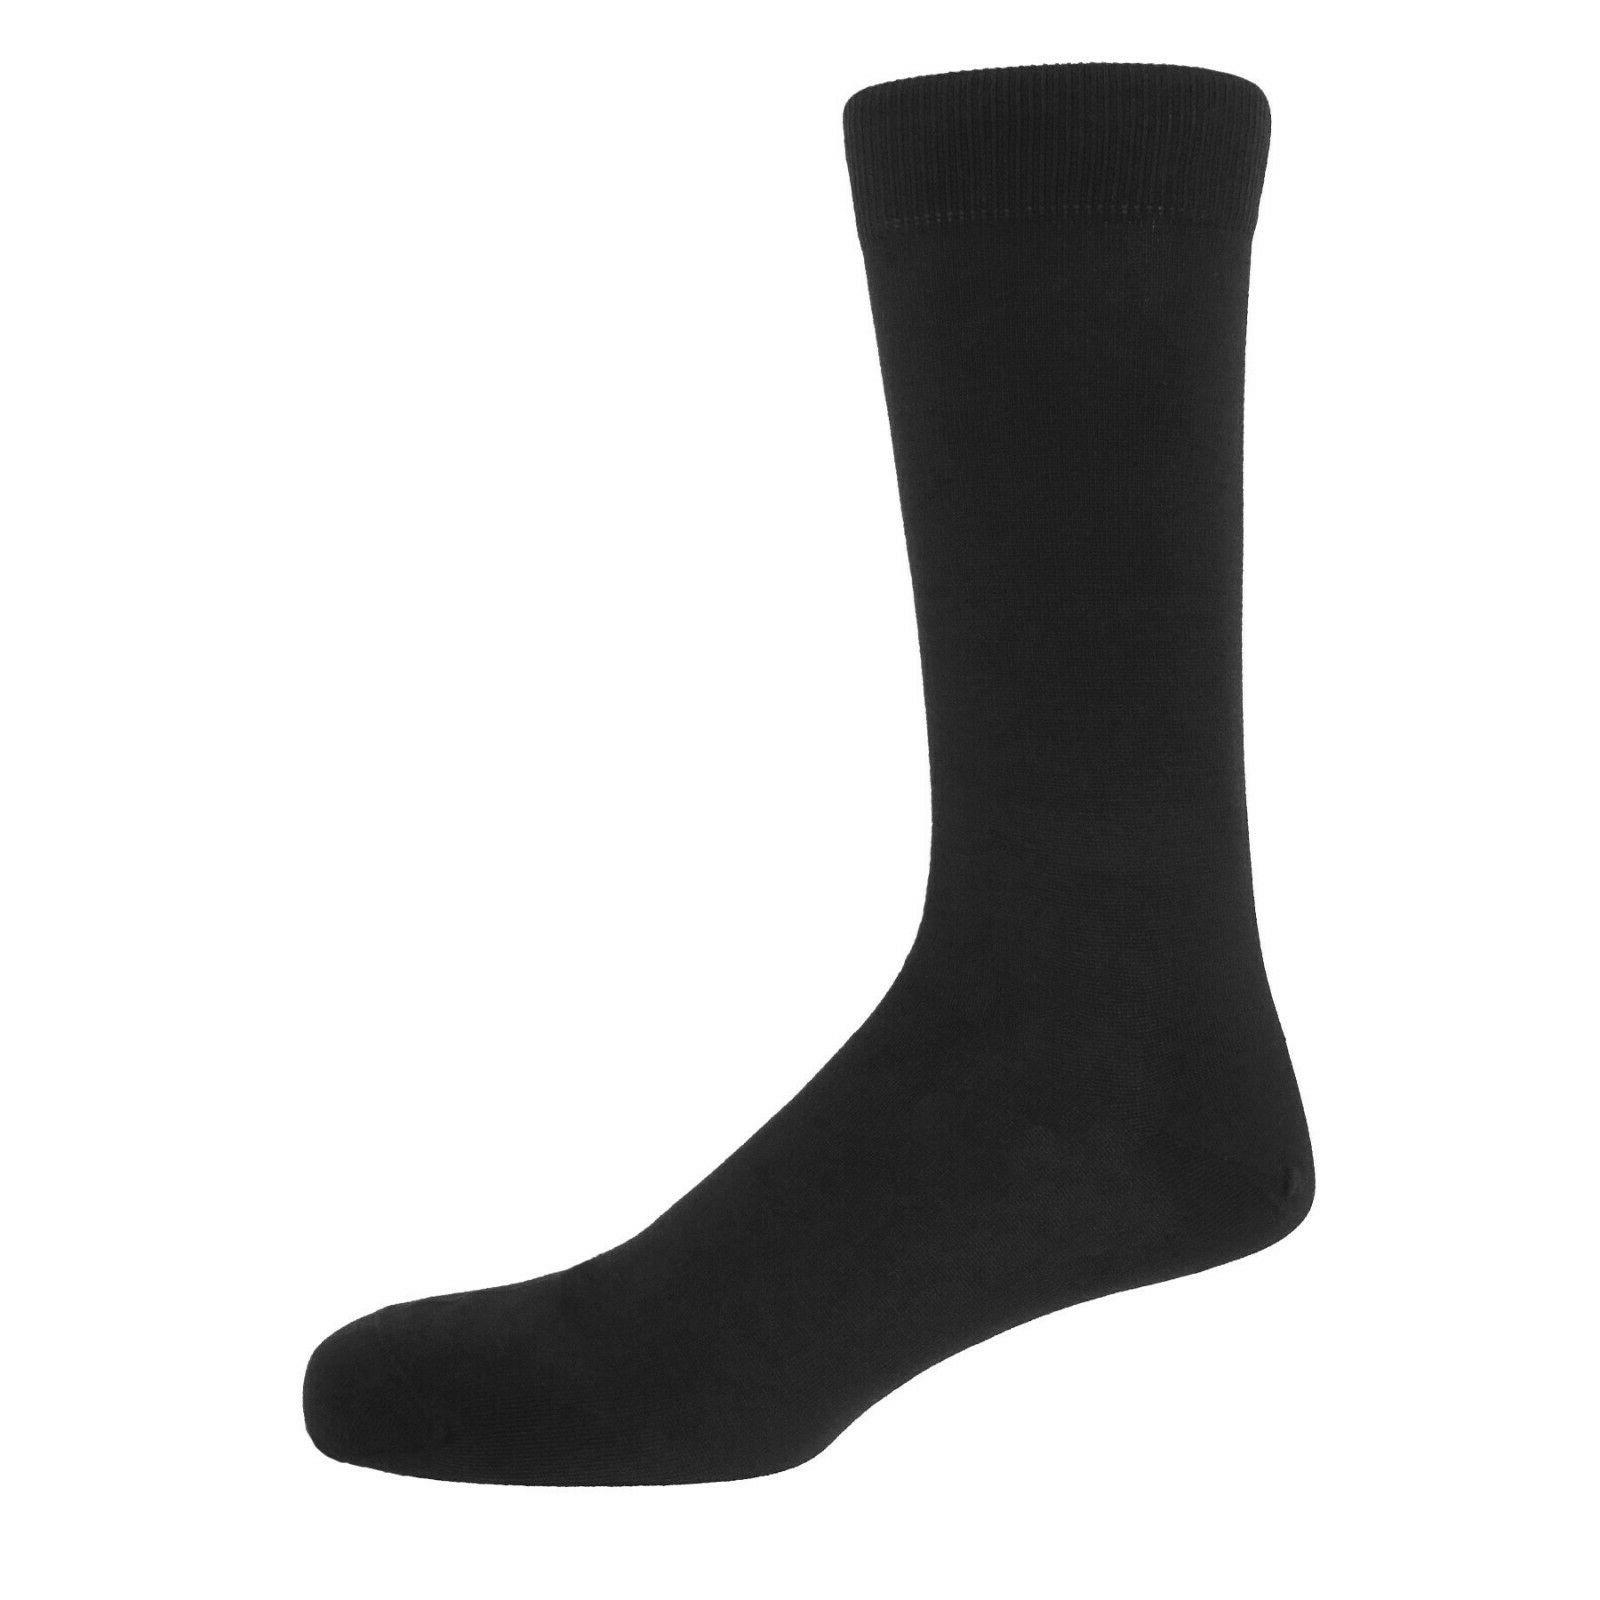 New Pairs Mens Black Classic Dress Cotton Solid Sox